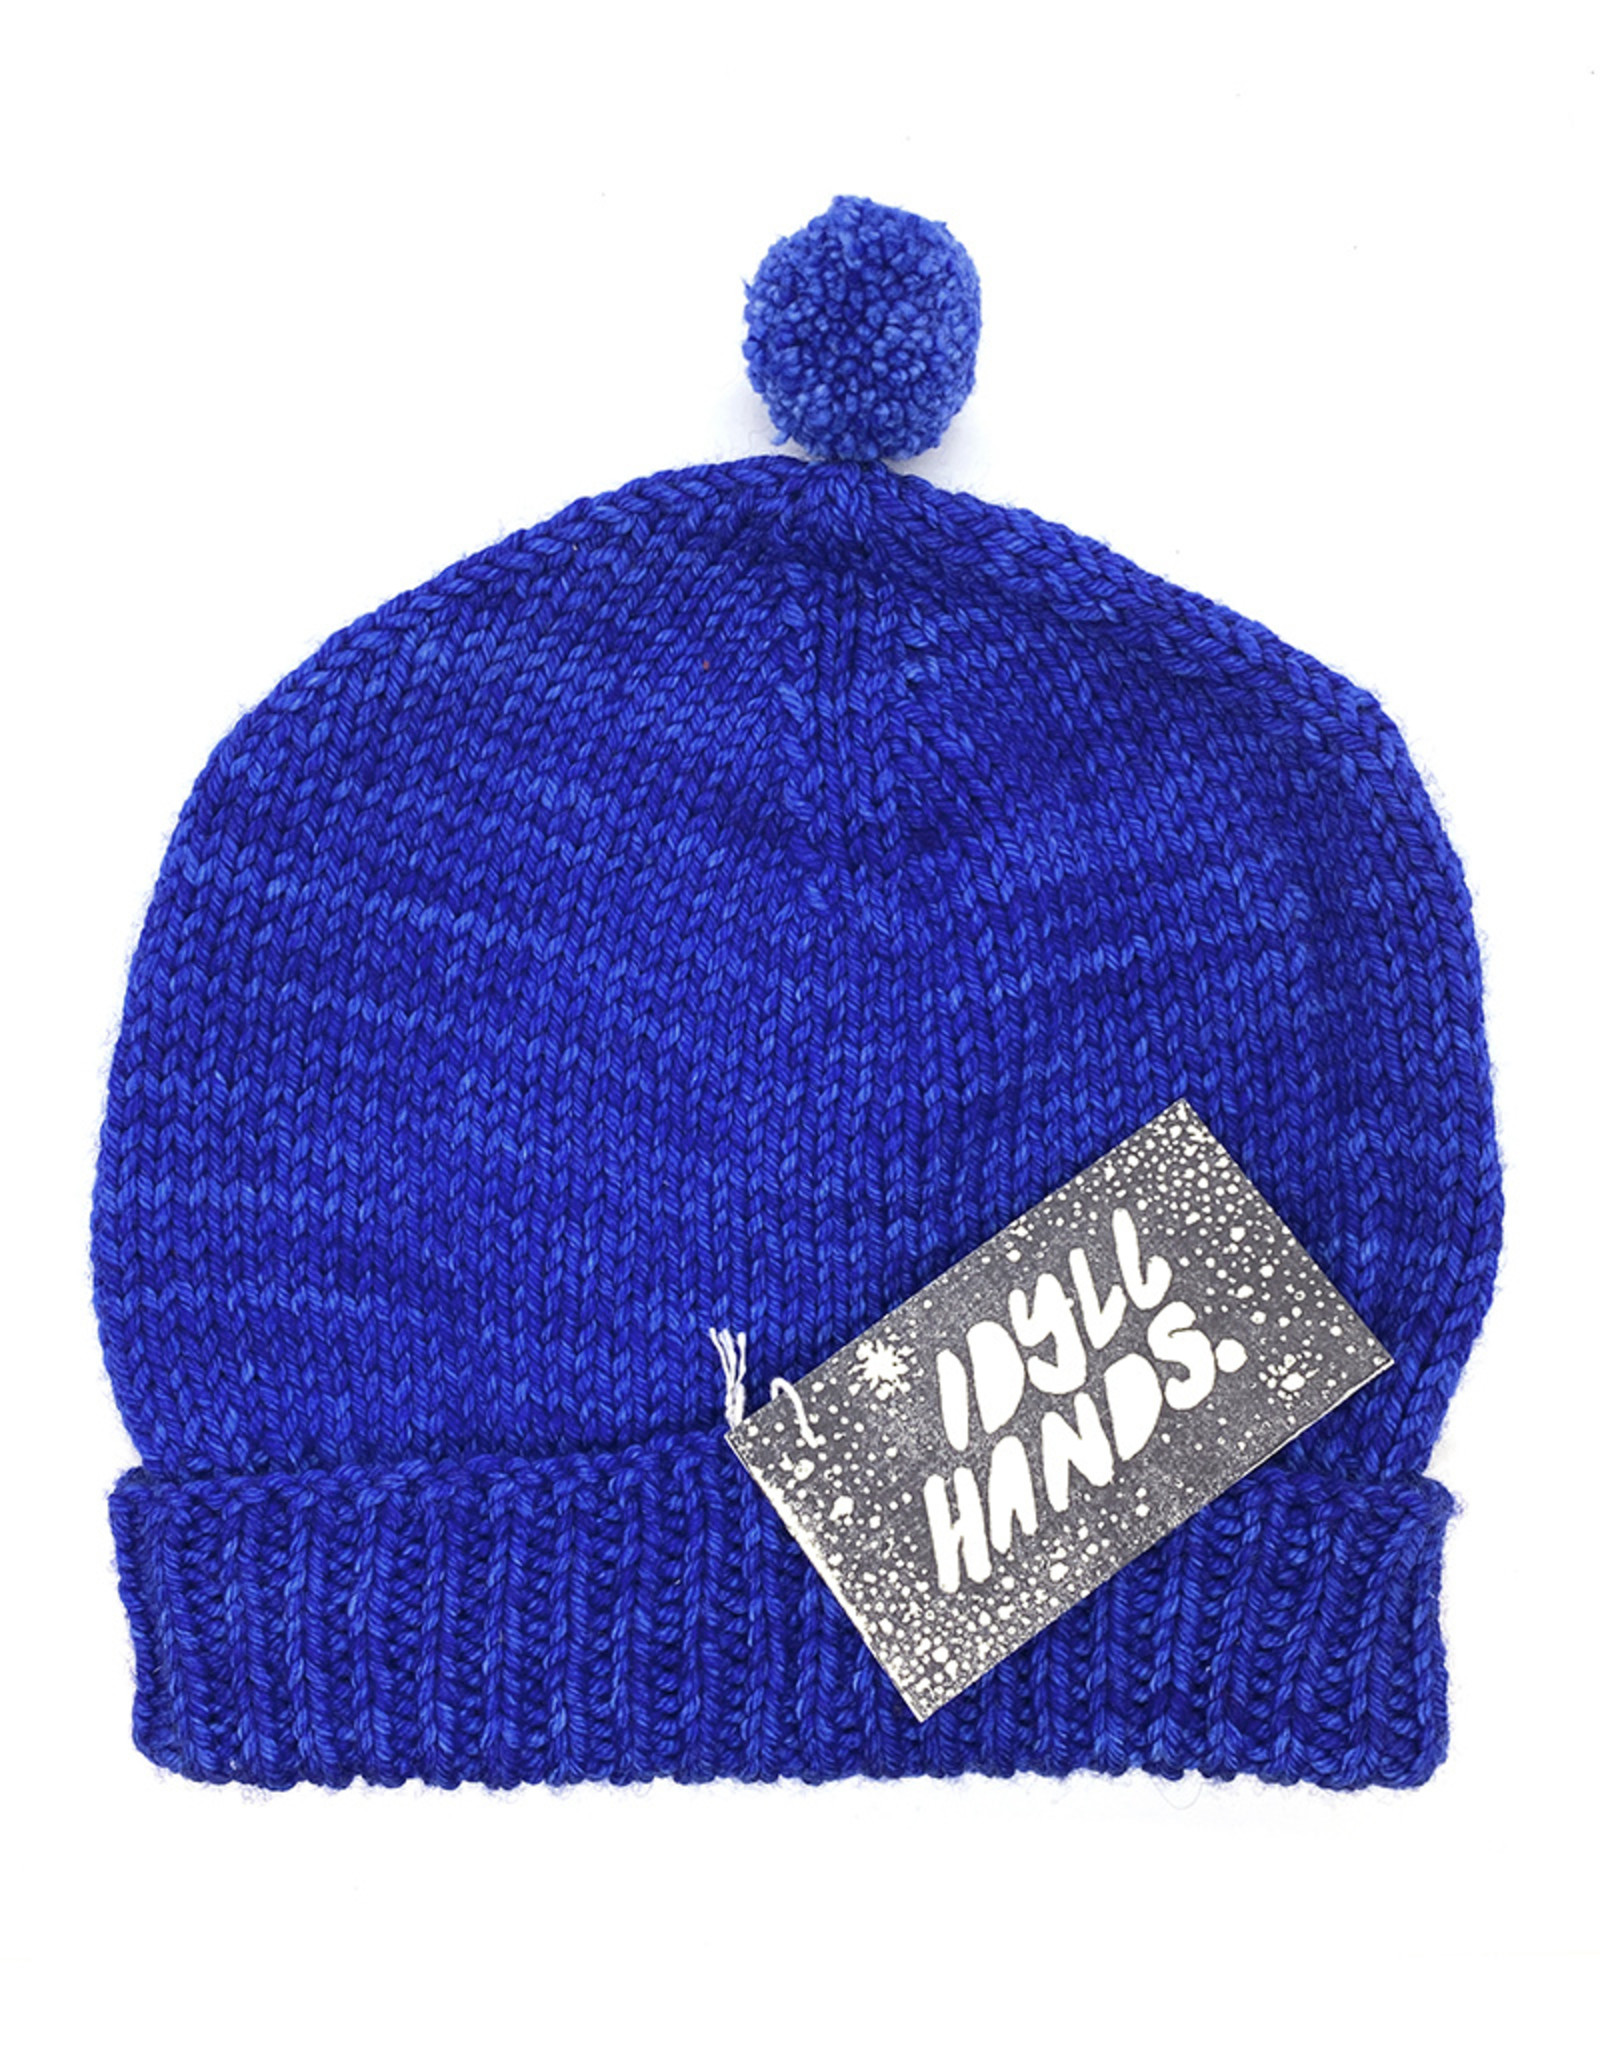 Idyll Hands Knit Hats by Idyll Hands